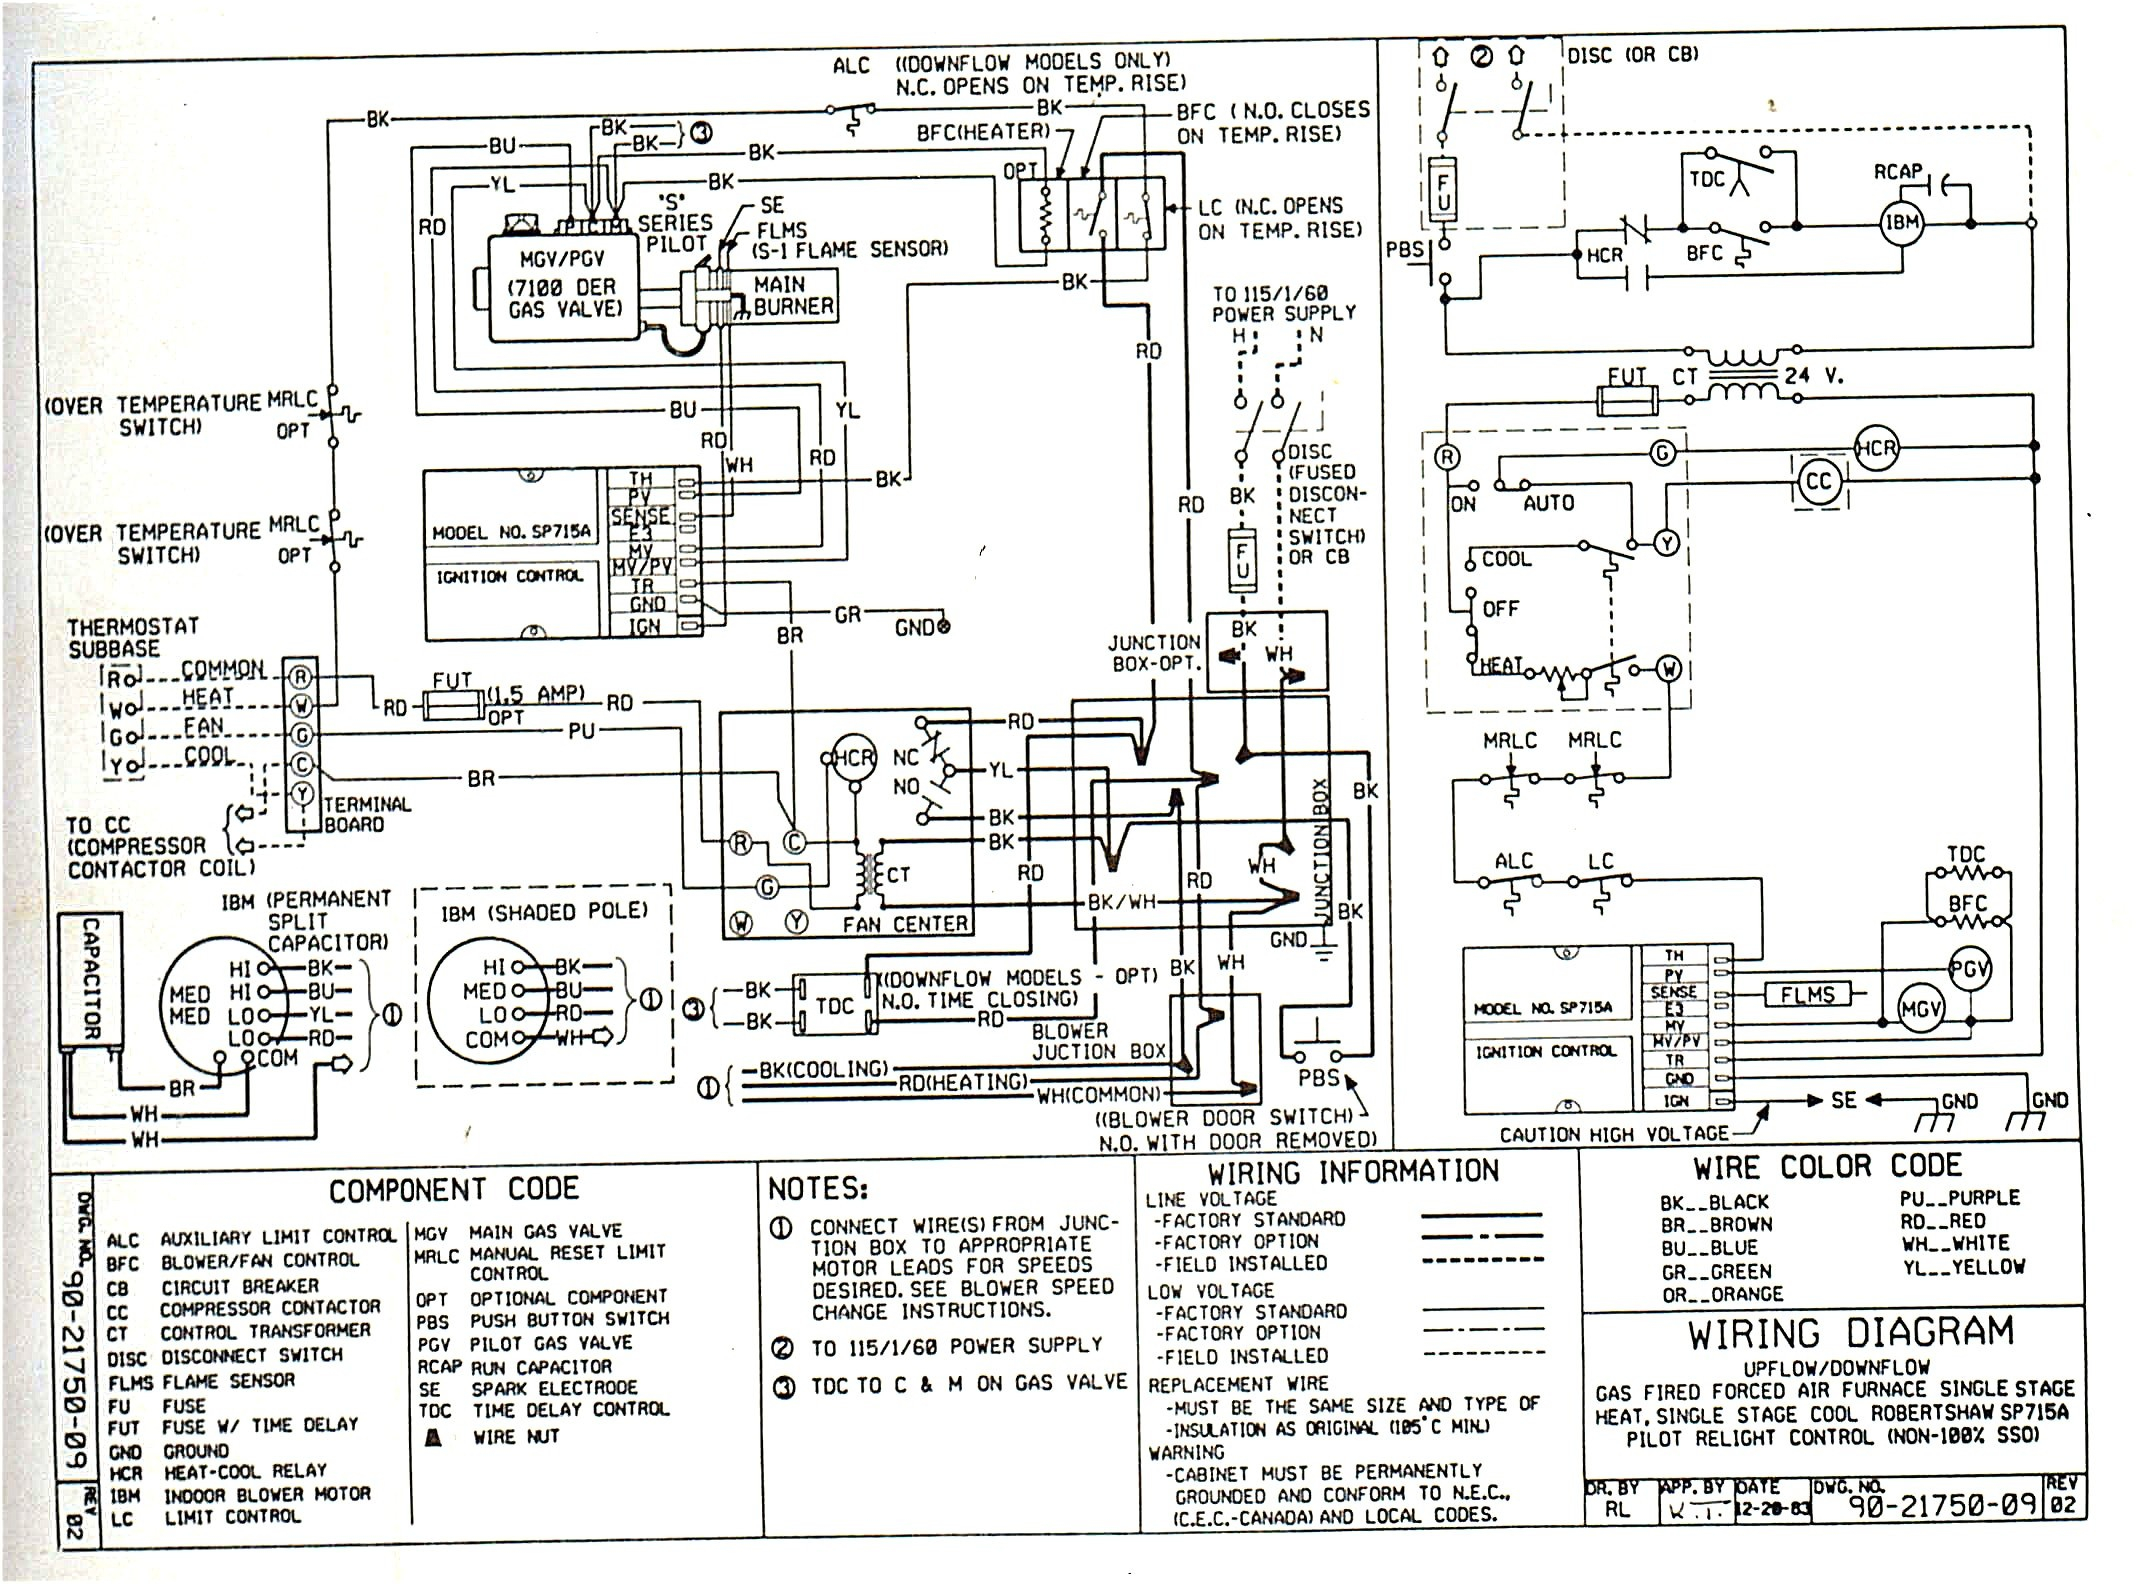 Gas Furnace Schematic Wiring Diagram -1998 Bmw 318i Starter Wiring |  Begeboy Wiring Diagram Source | N8mpn050b12a1 Gas Furnace Schematic Diagram |  | Begeboy Wiring Diagram Source